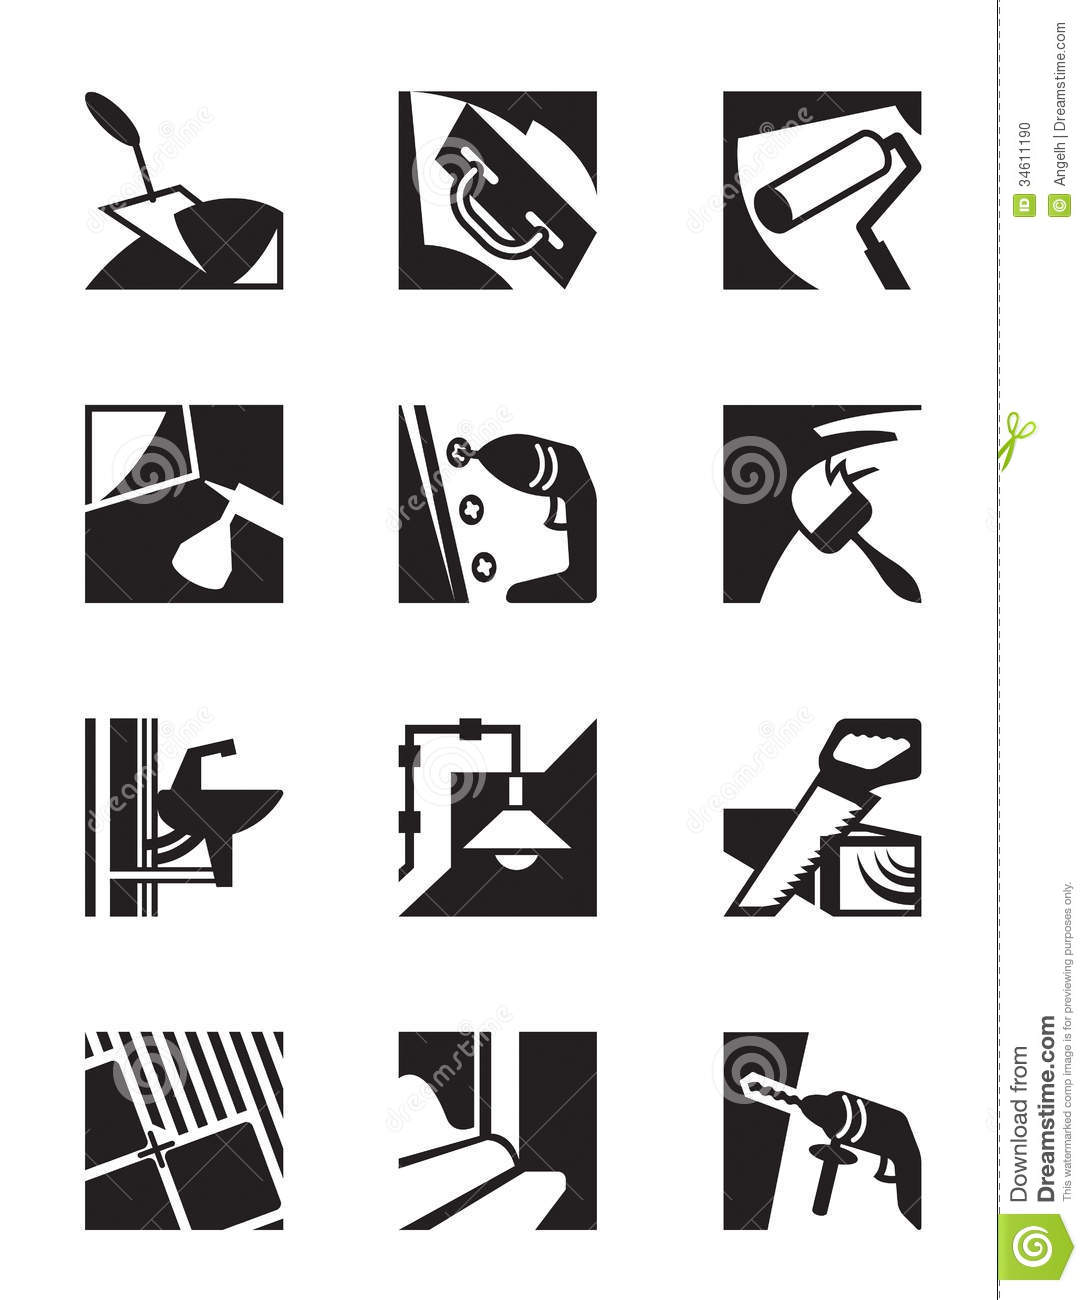 Construction Tools And Materials Stock Photo Image 34611190